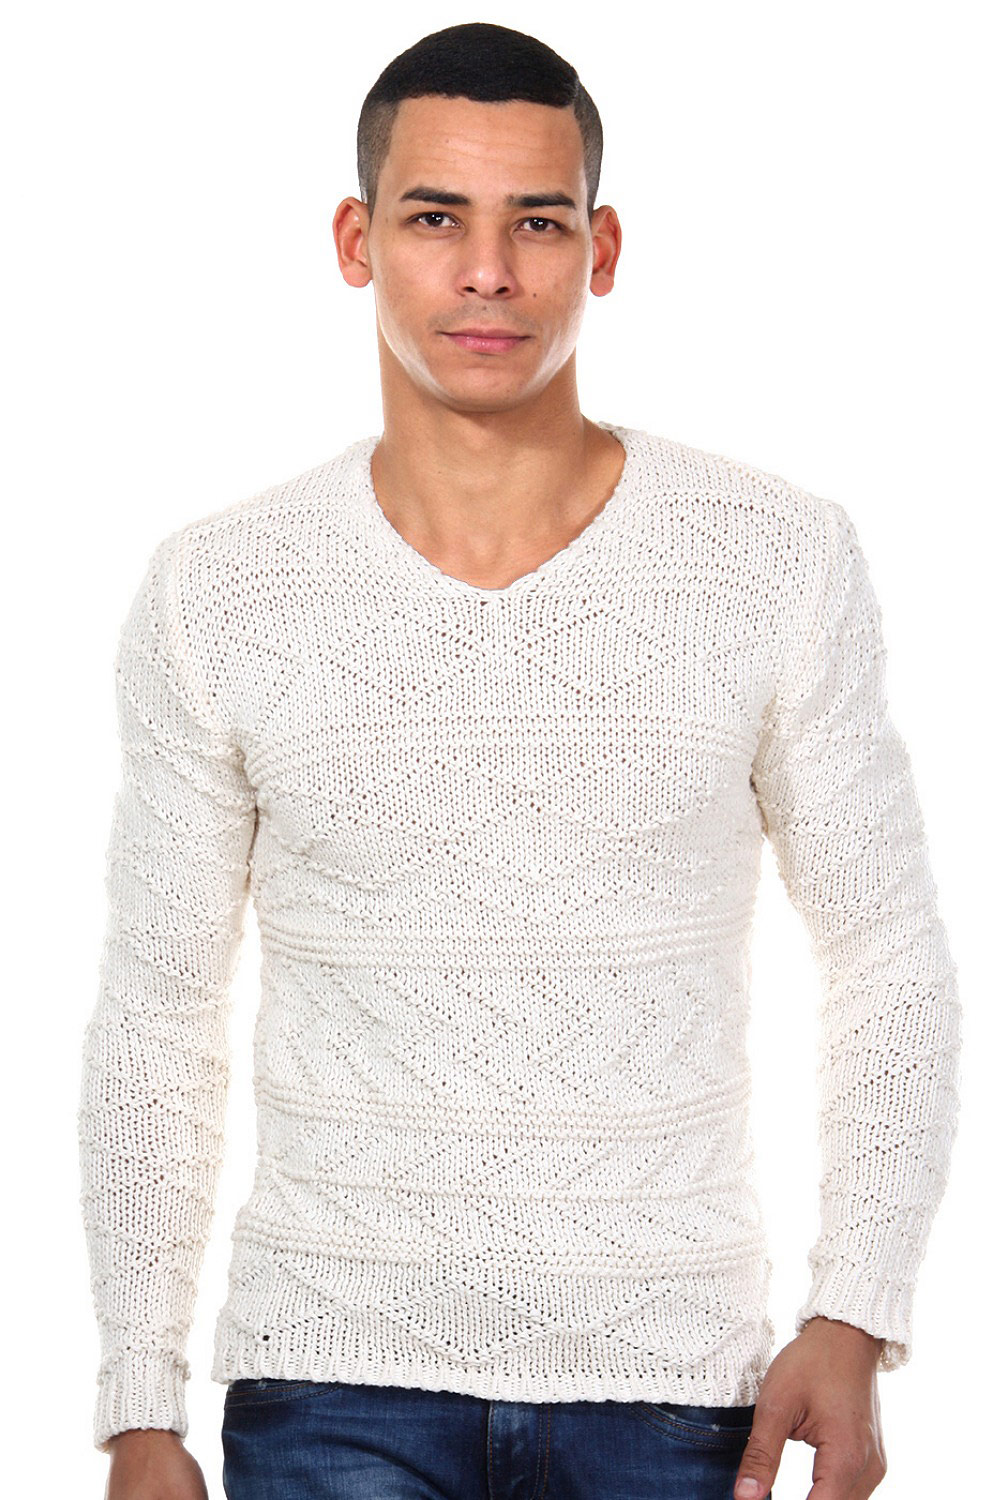 R-NEAL jumper v-neck slim fit at oboy.com